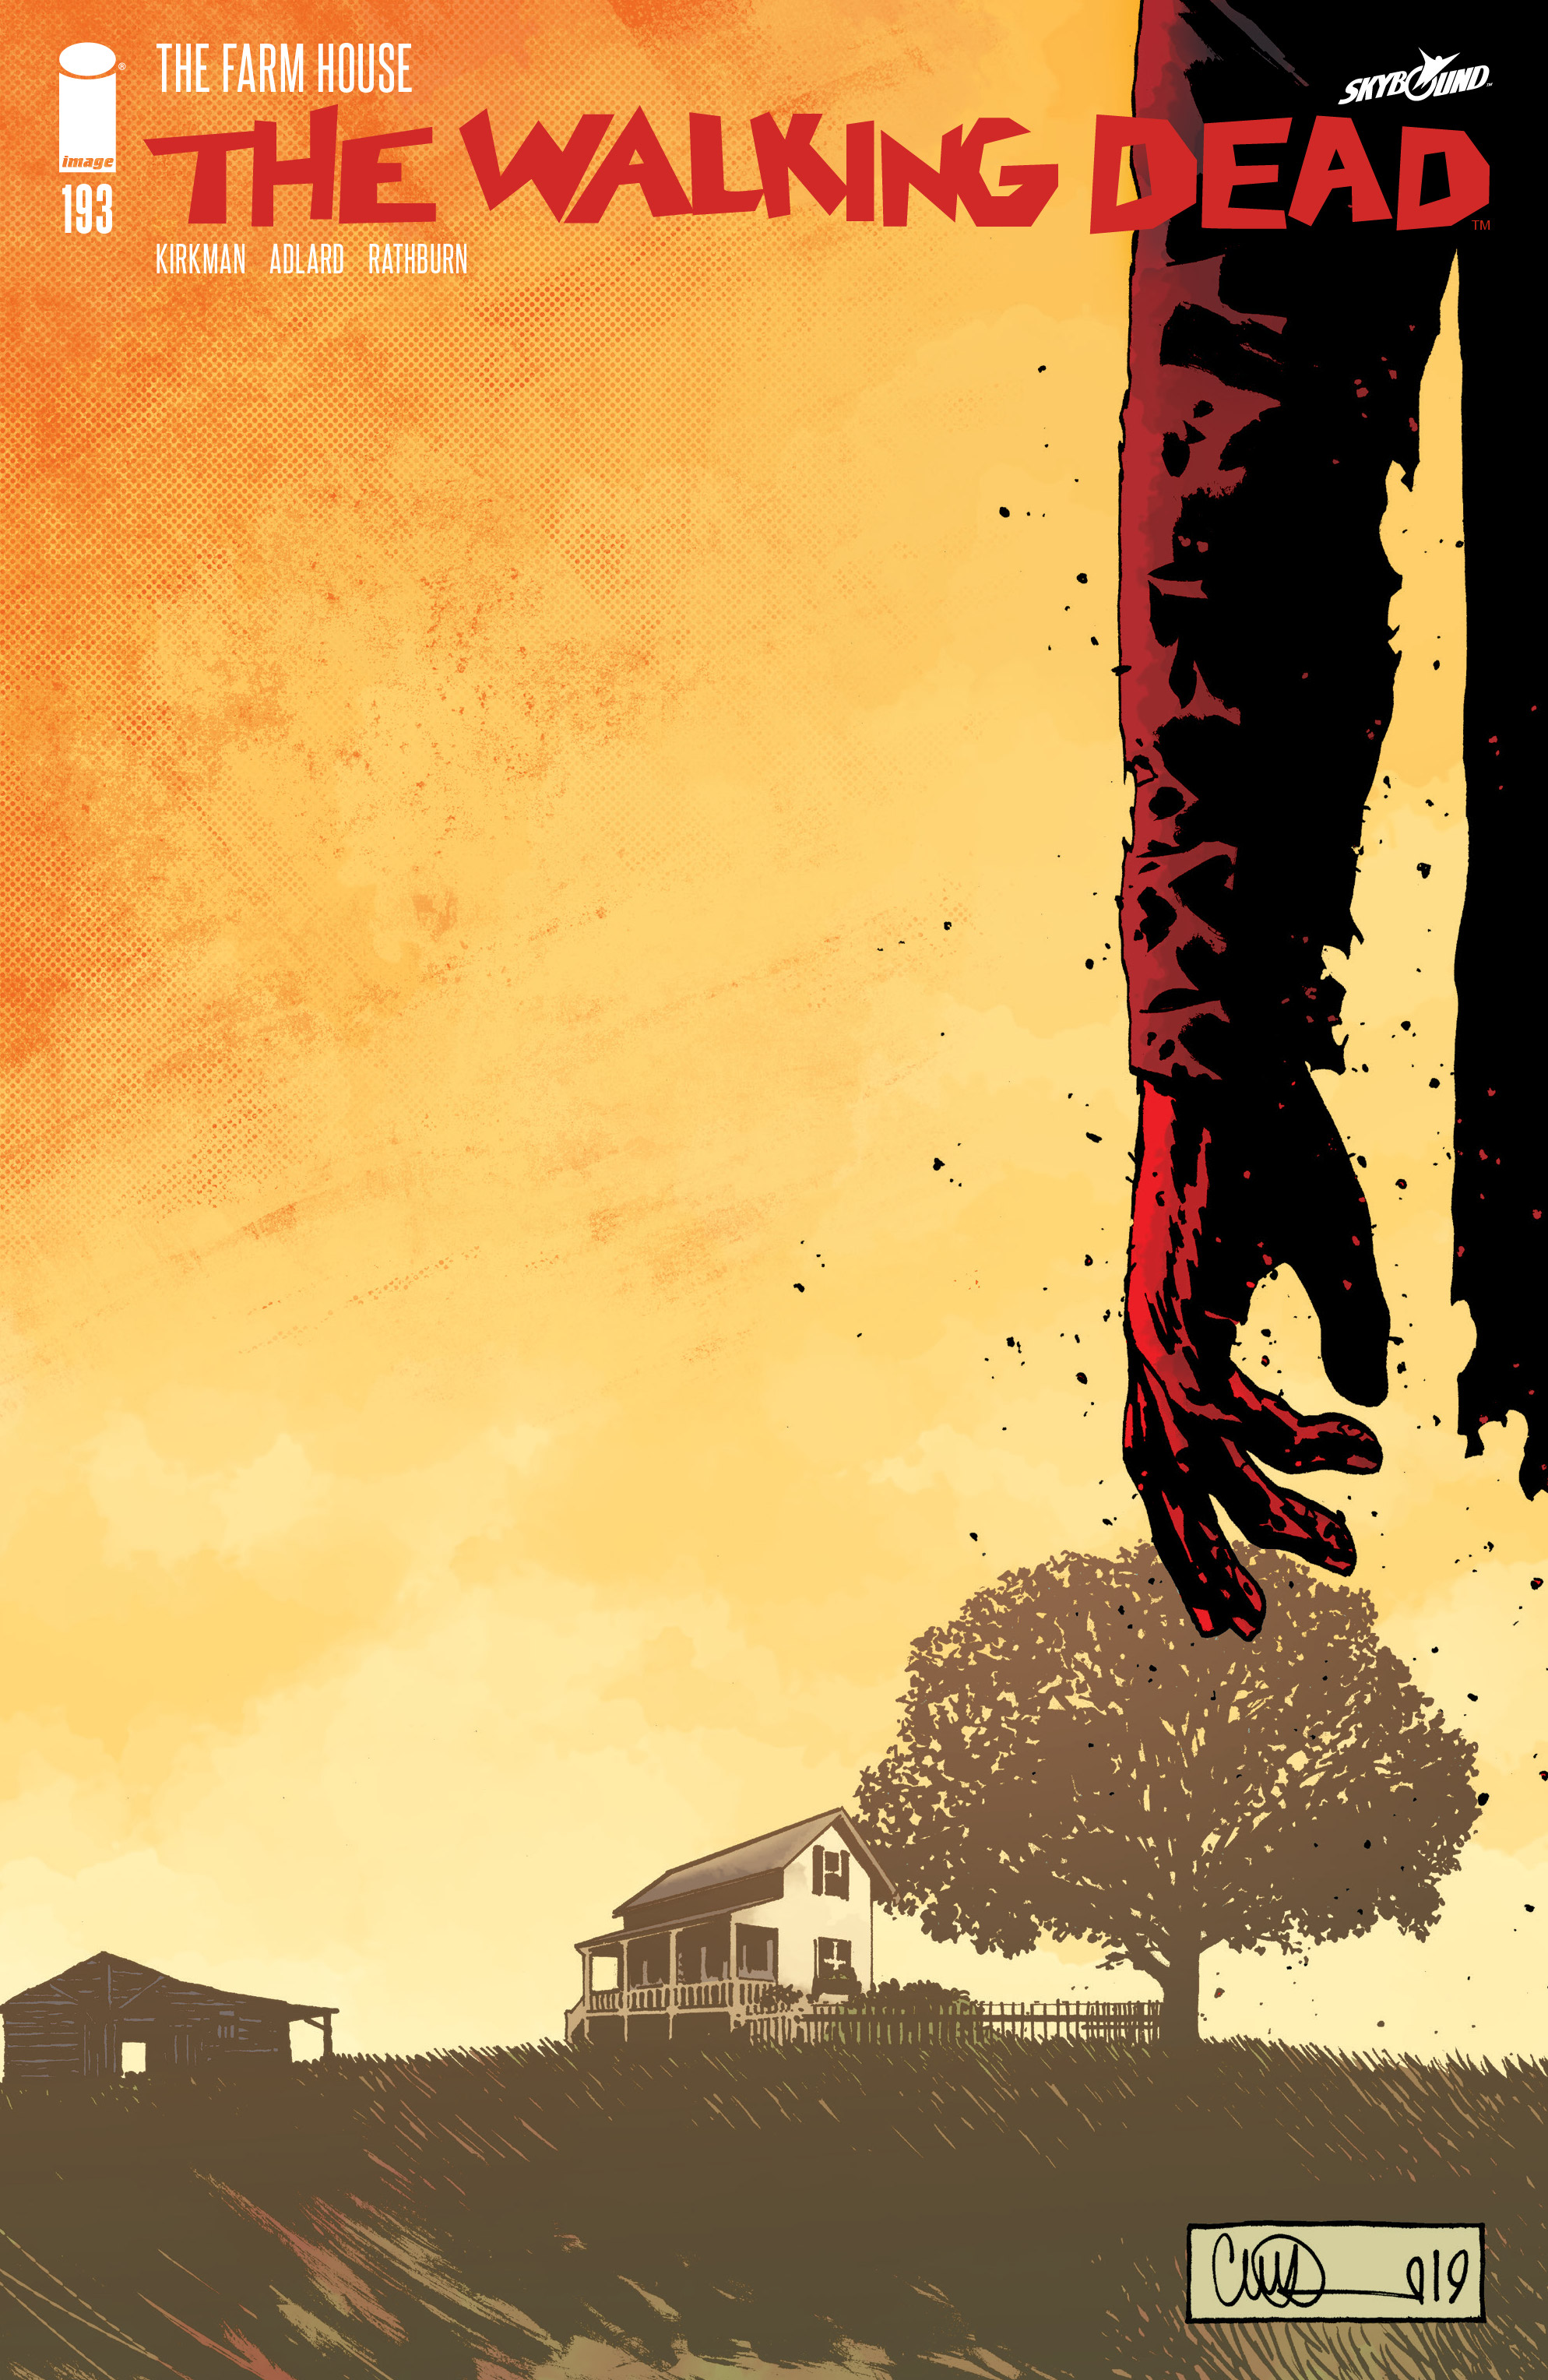 Robert Kirkman reflects on the the surprise ending of The Walking Dead at SDCC